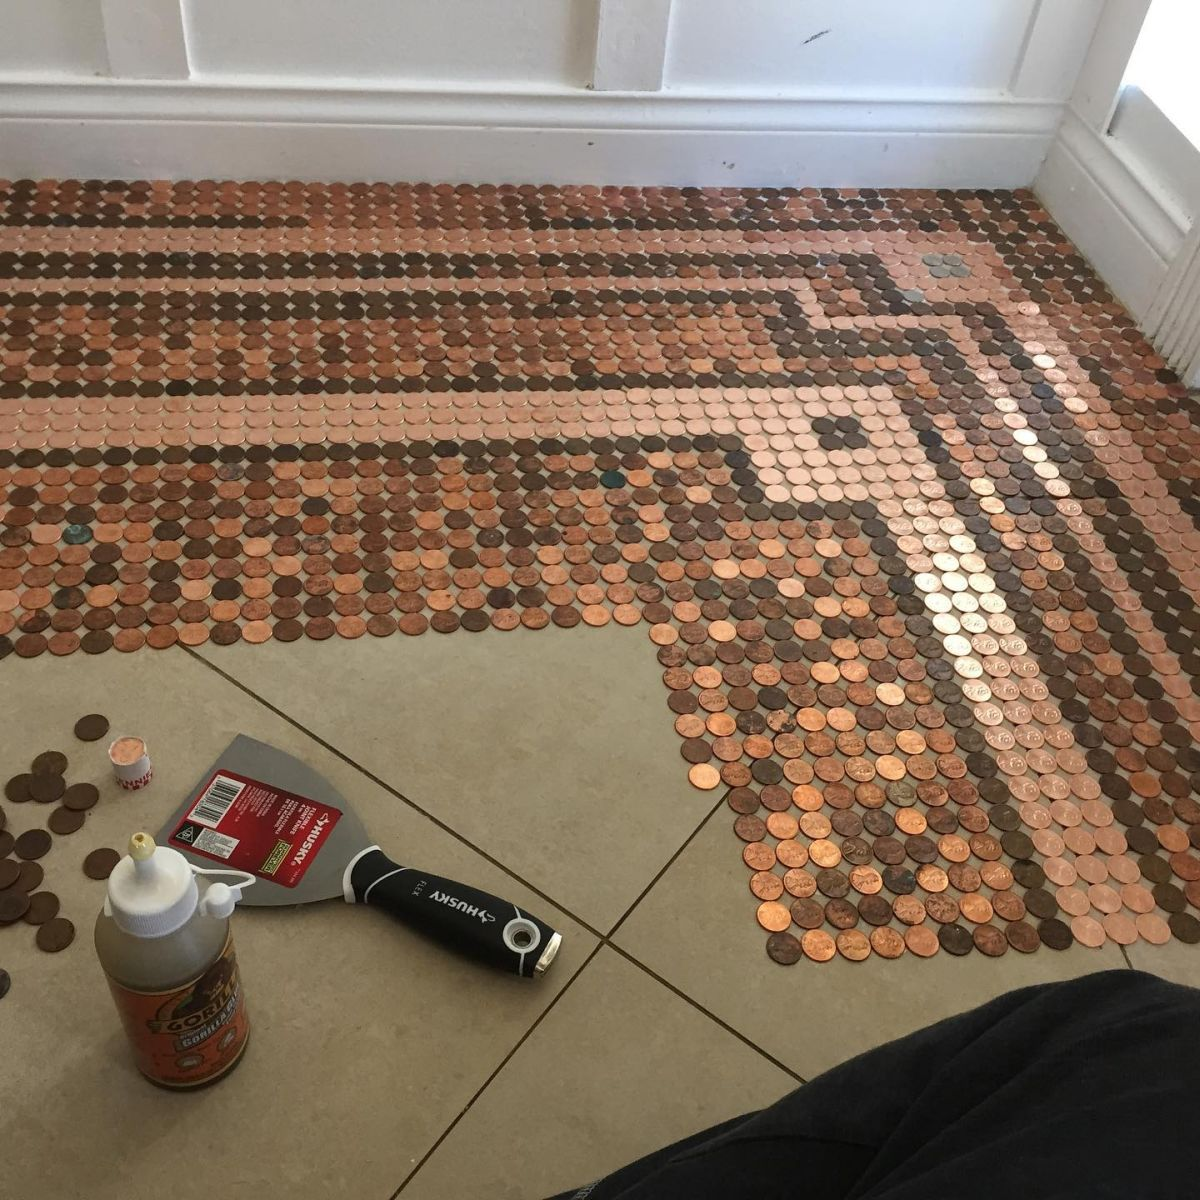 A Floor Covered In Pennies - How It's Done And What It Takes